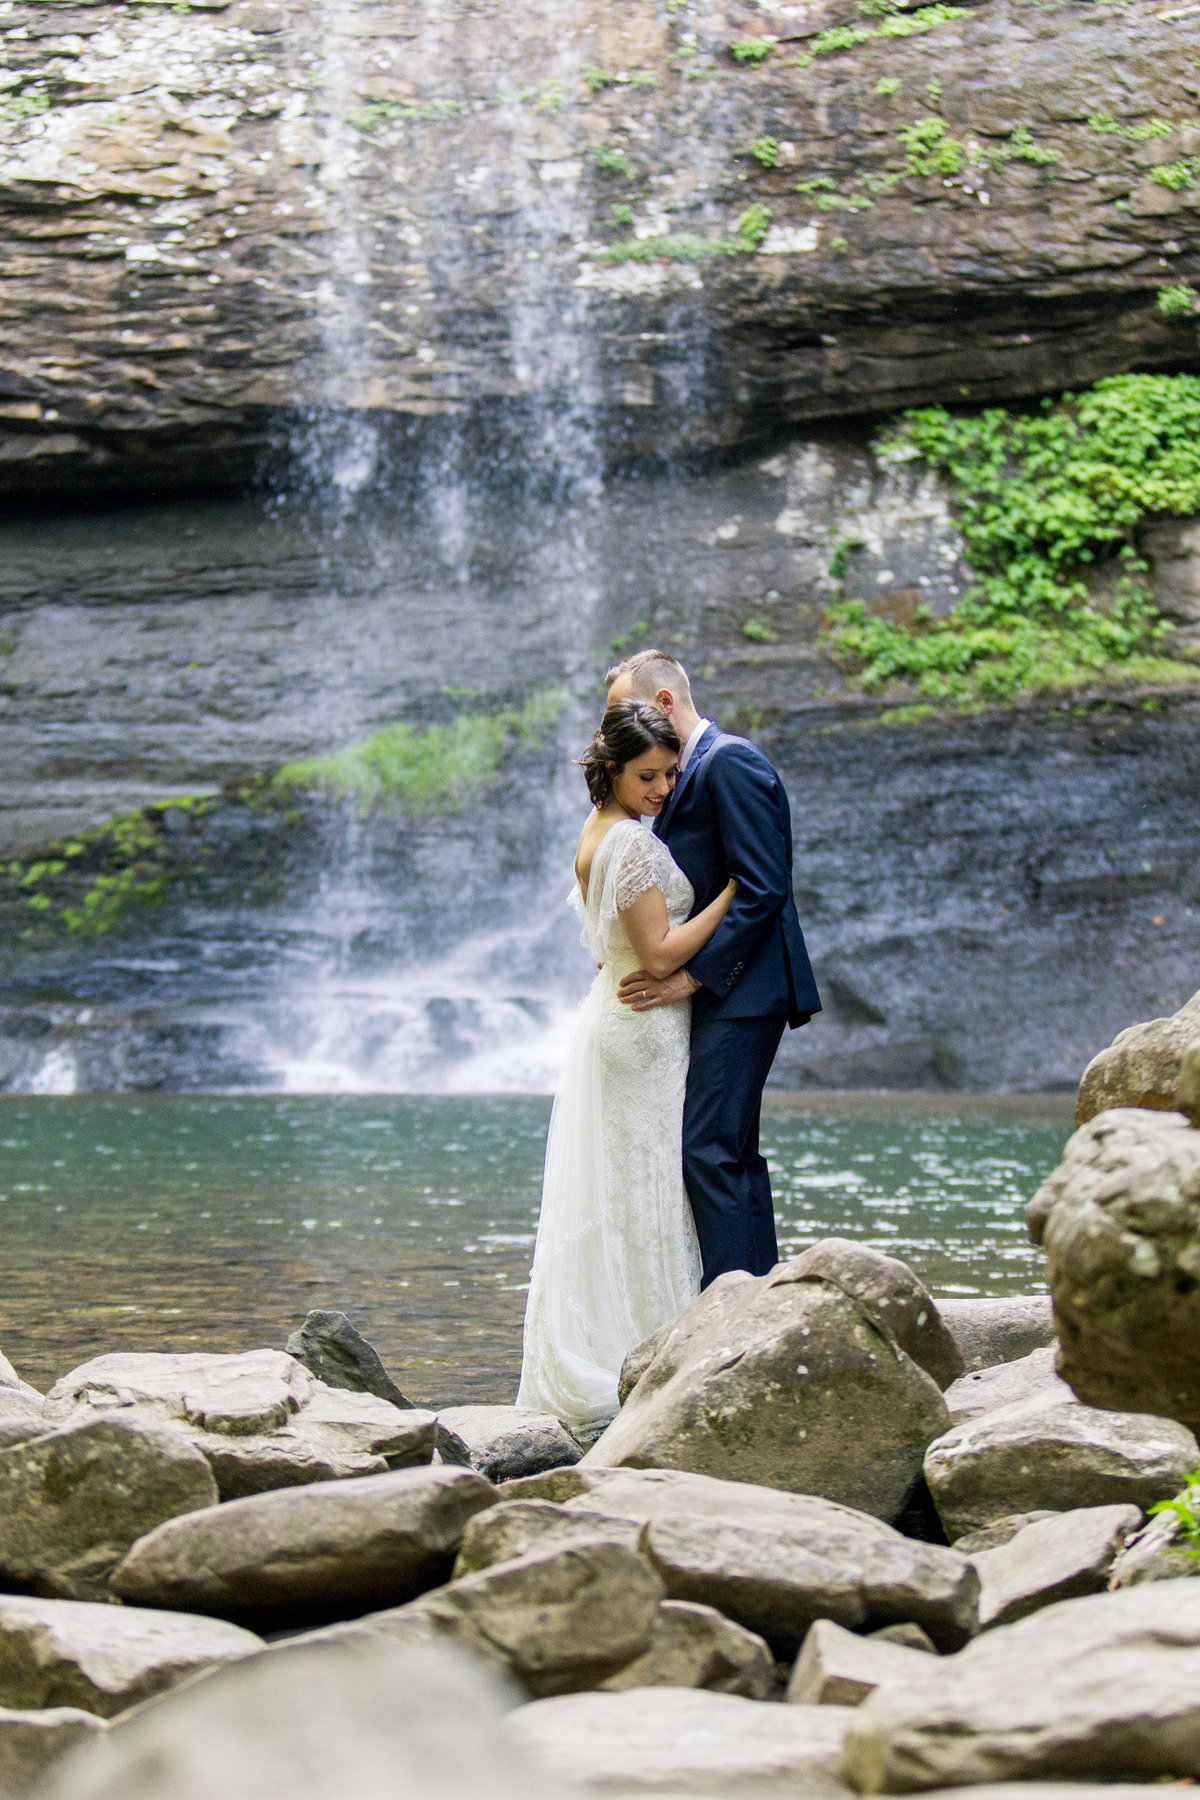 Romantic bride and groom photos captured by destination elopement photographer Rebecca Cerasani